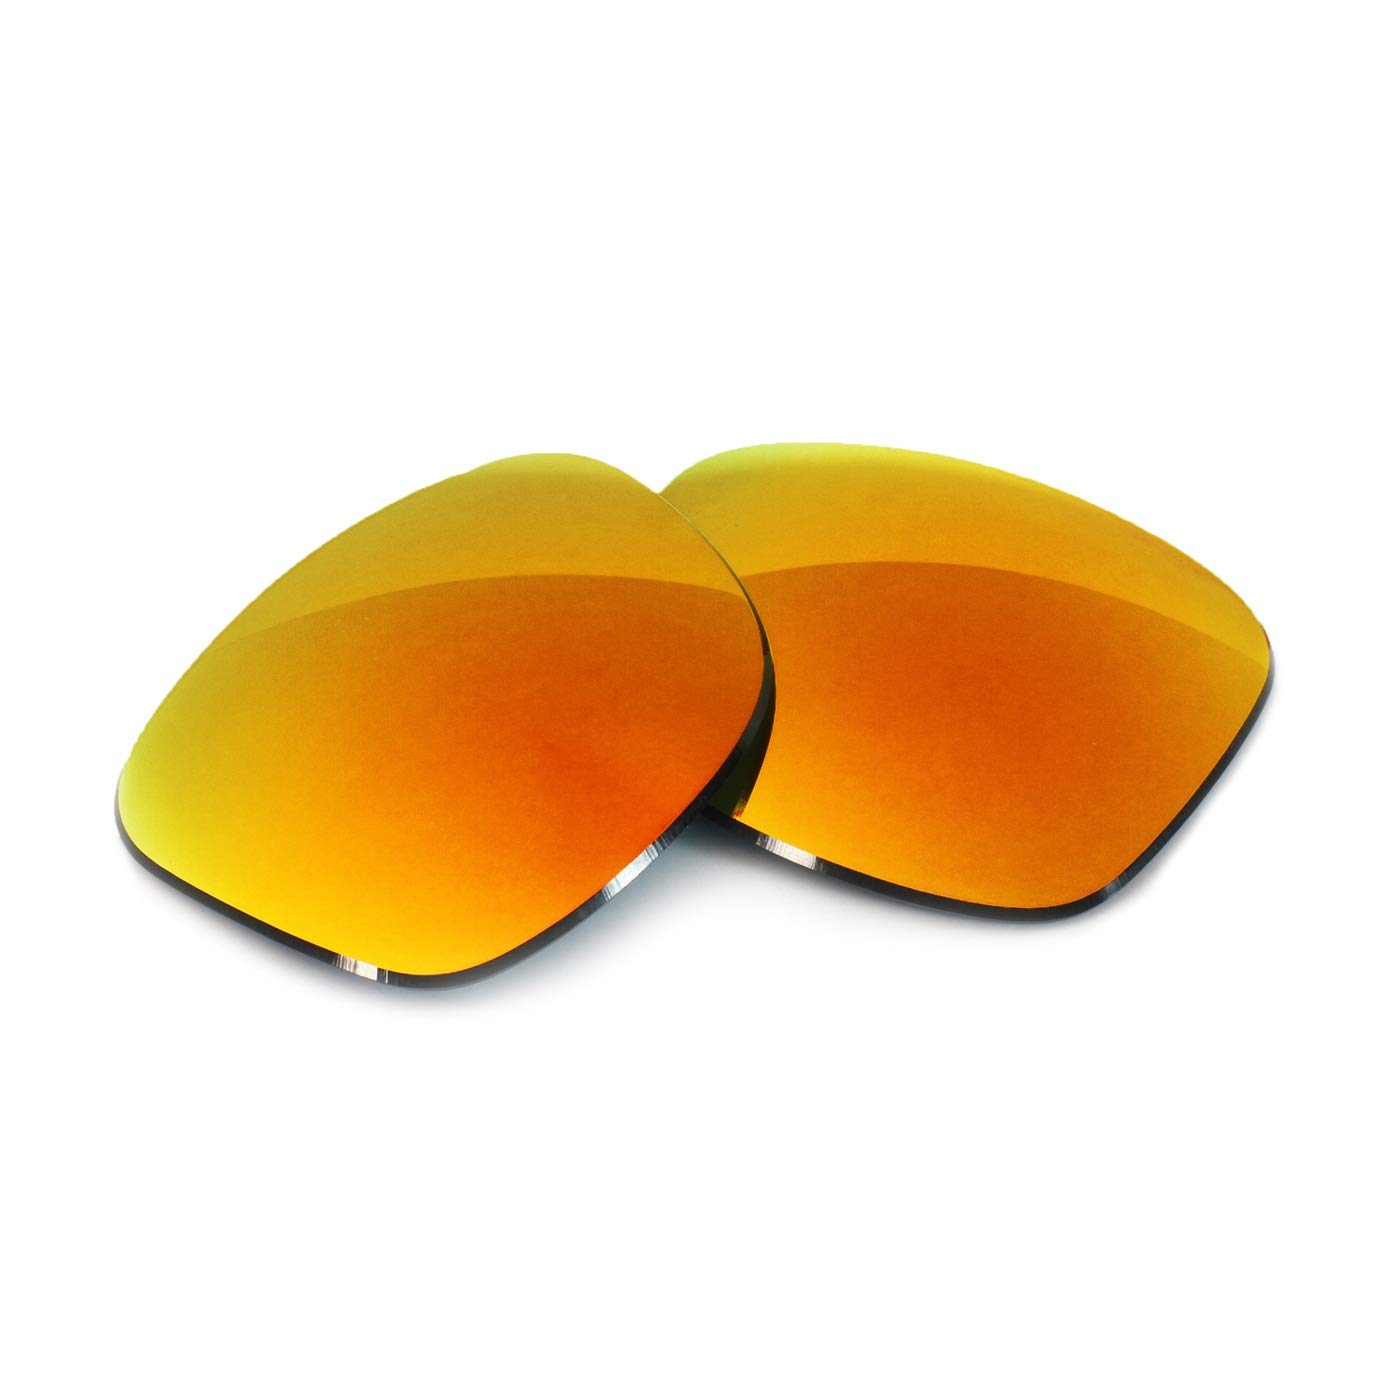 Fuse Lenses Polarized Replacement Lenses for Persol 2920